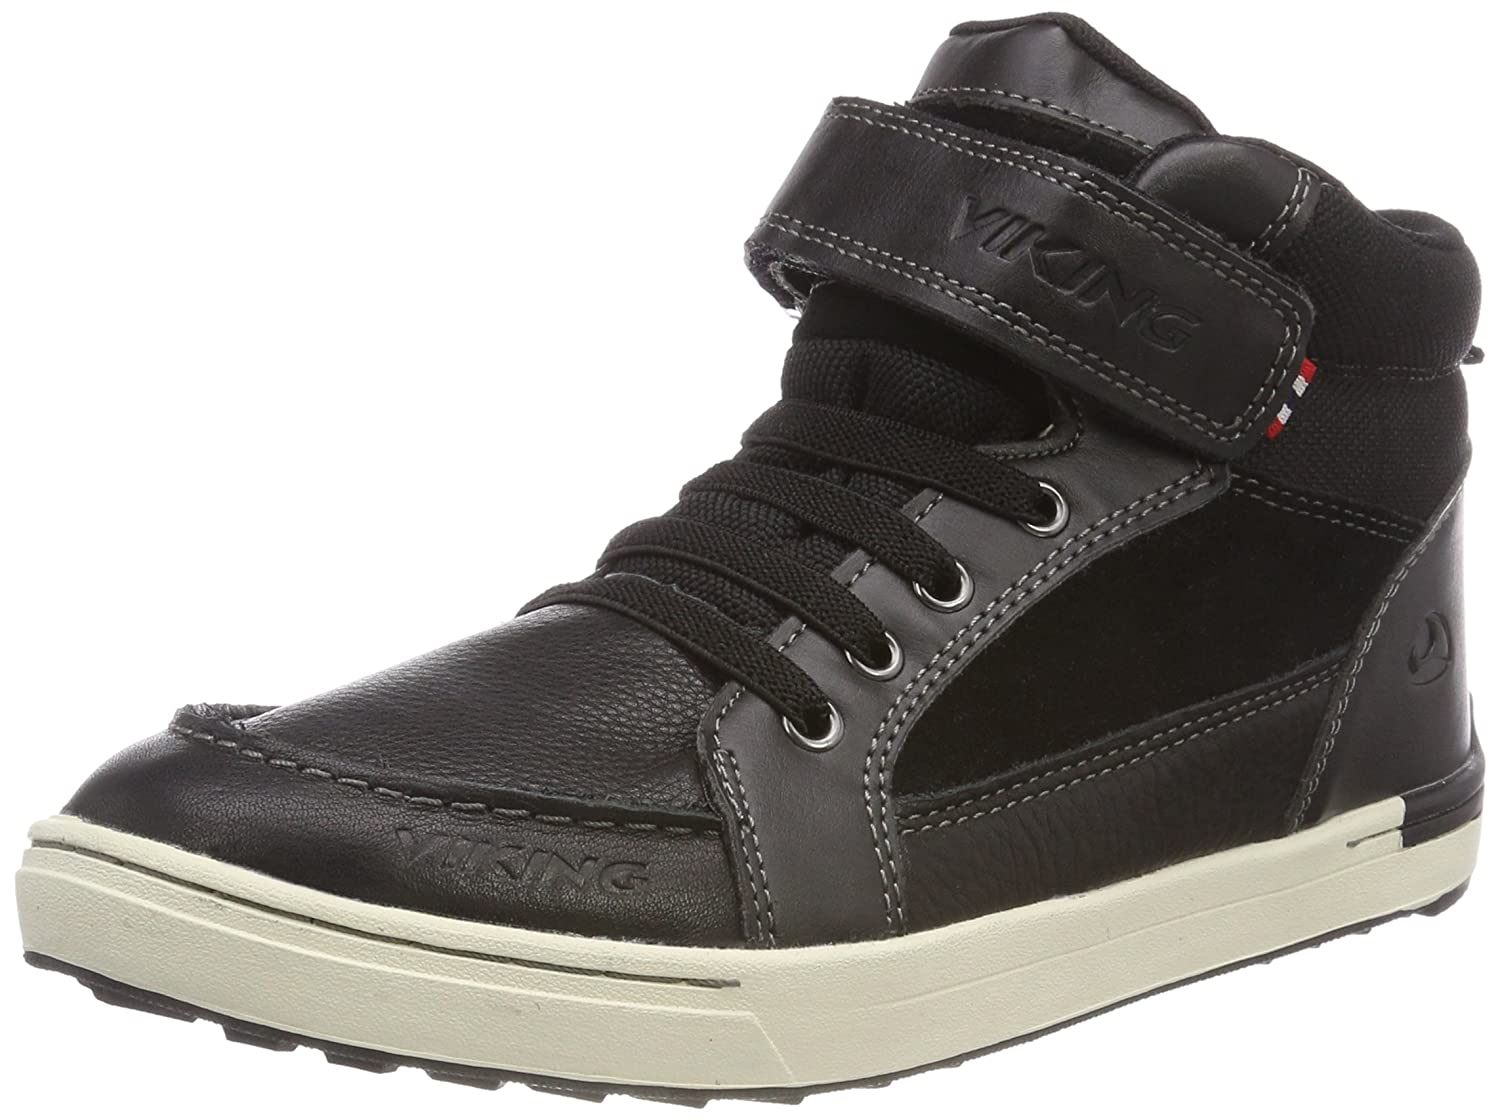 Viking Moss Mid, Chaussures Multisport Outdoor Mixte Enfant 3-48810